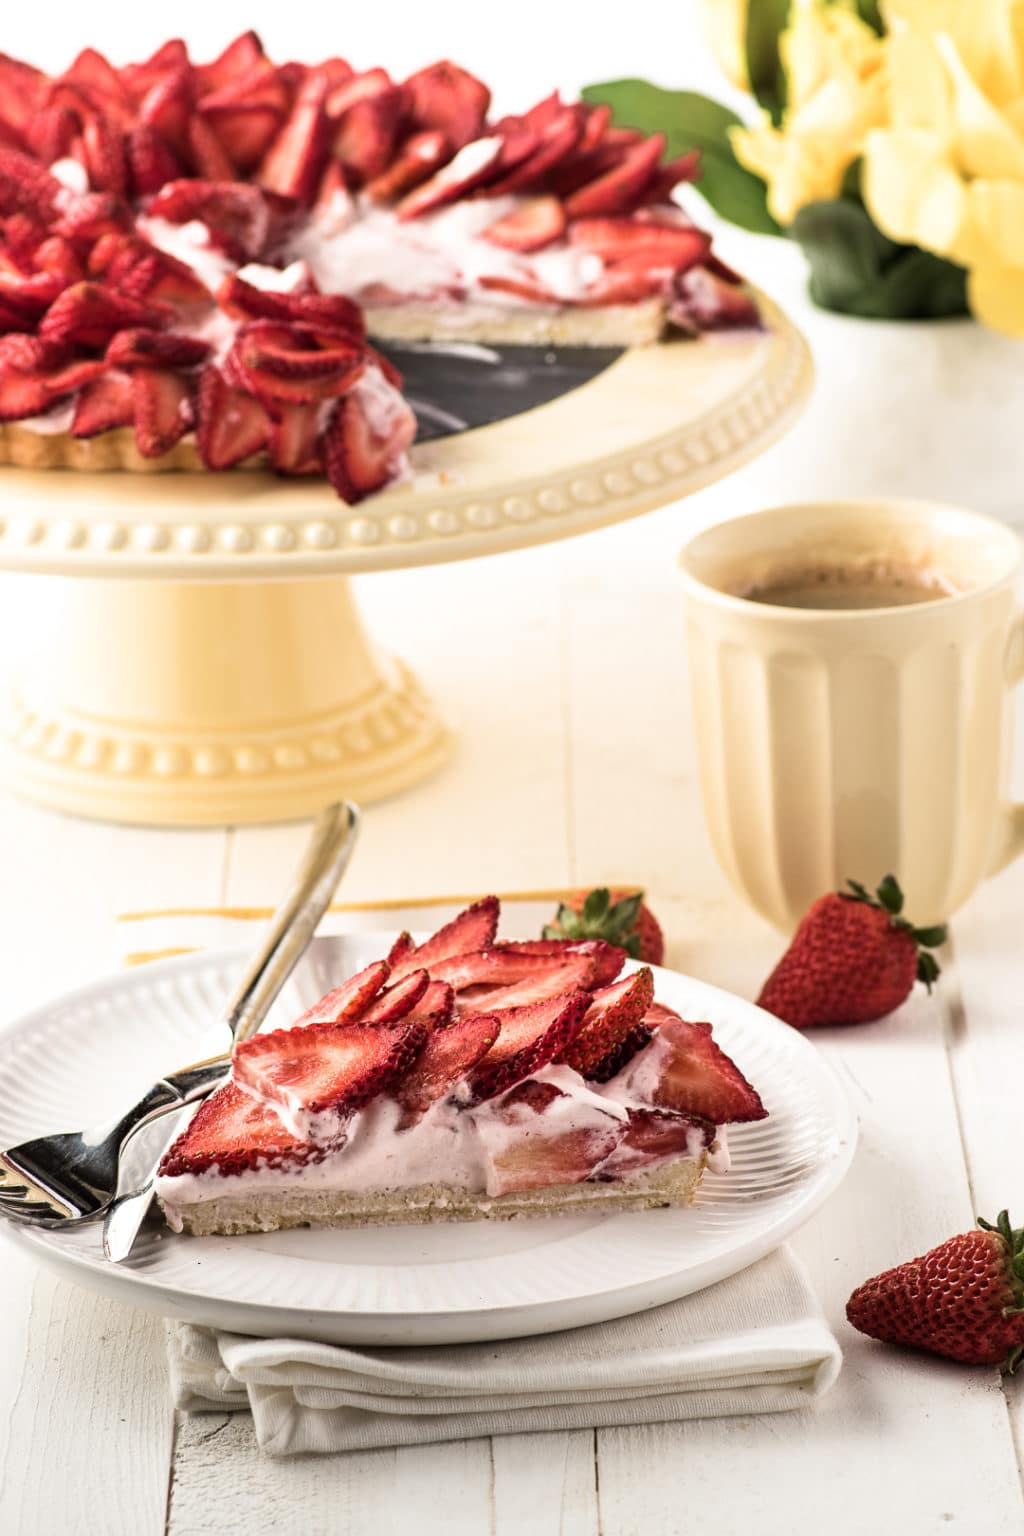 A strawberry cream pie topped with sliced strawberries on a yellow cake stand